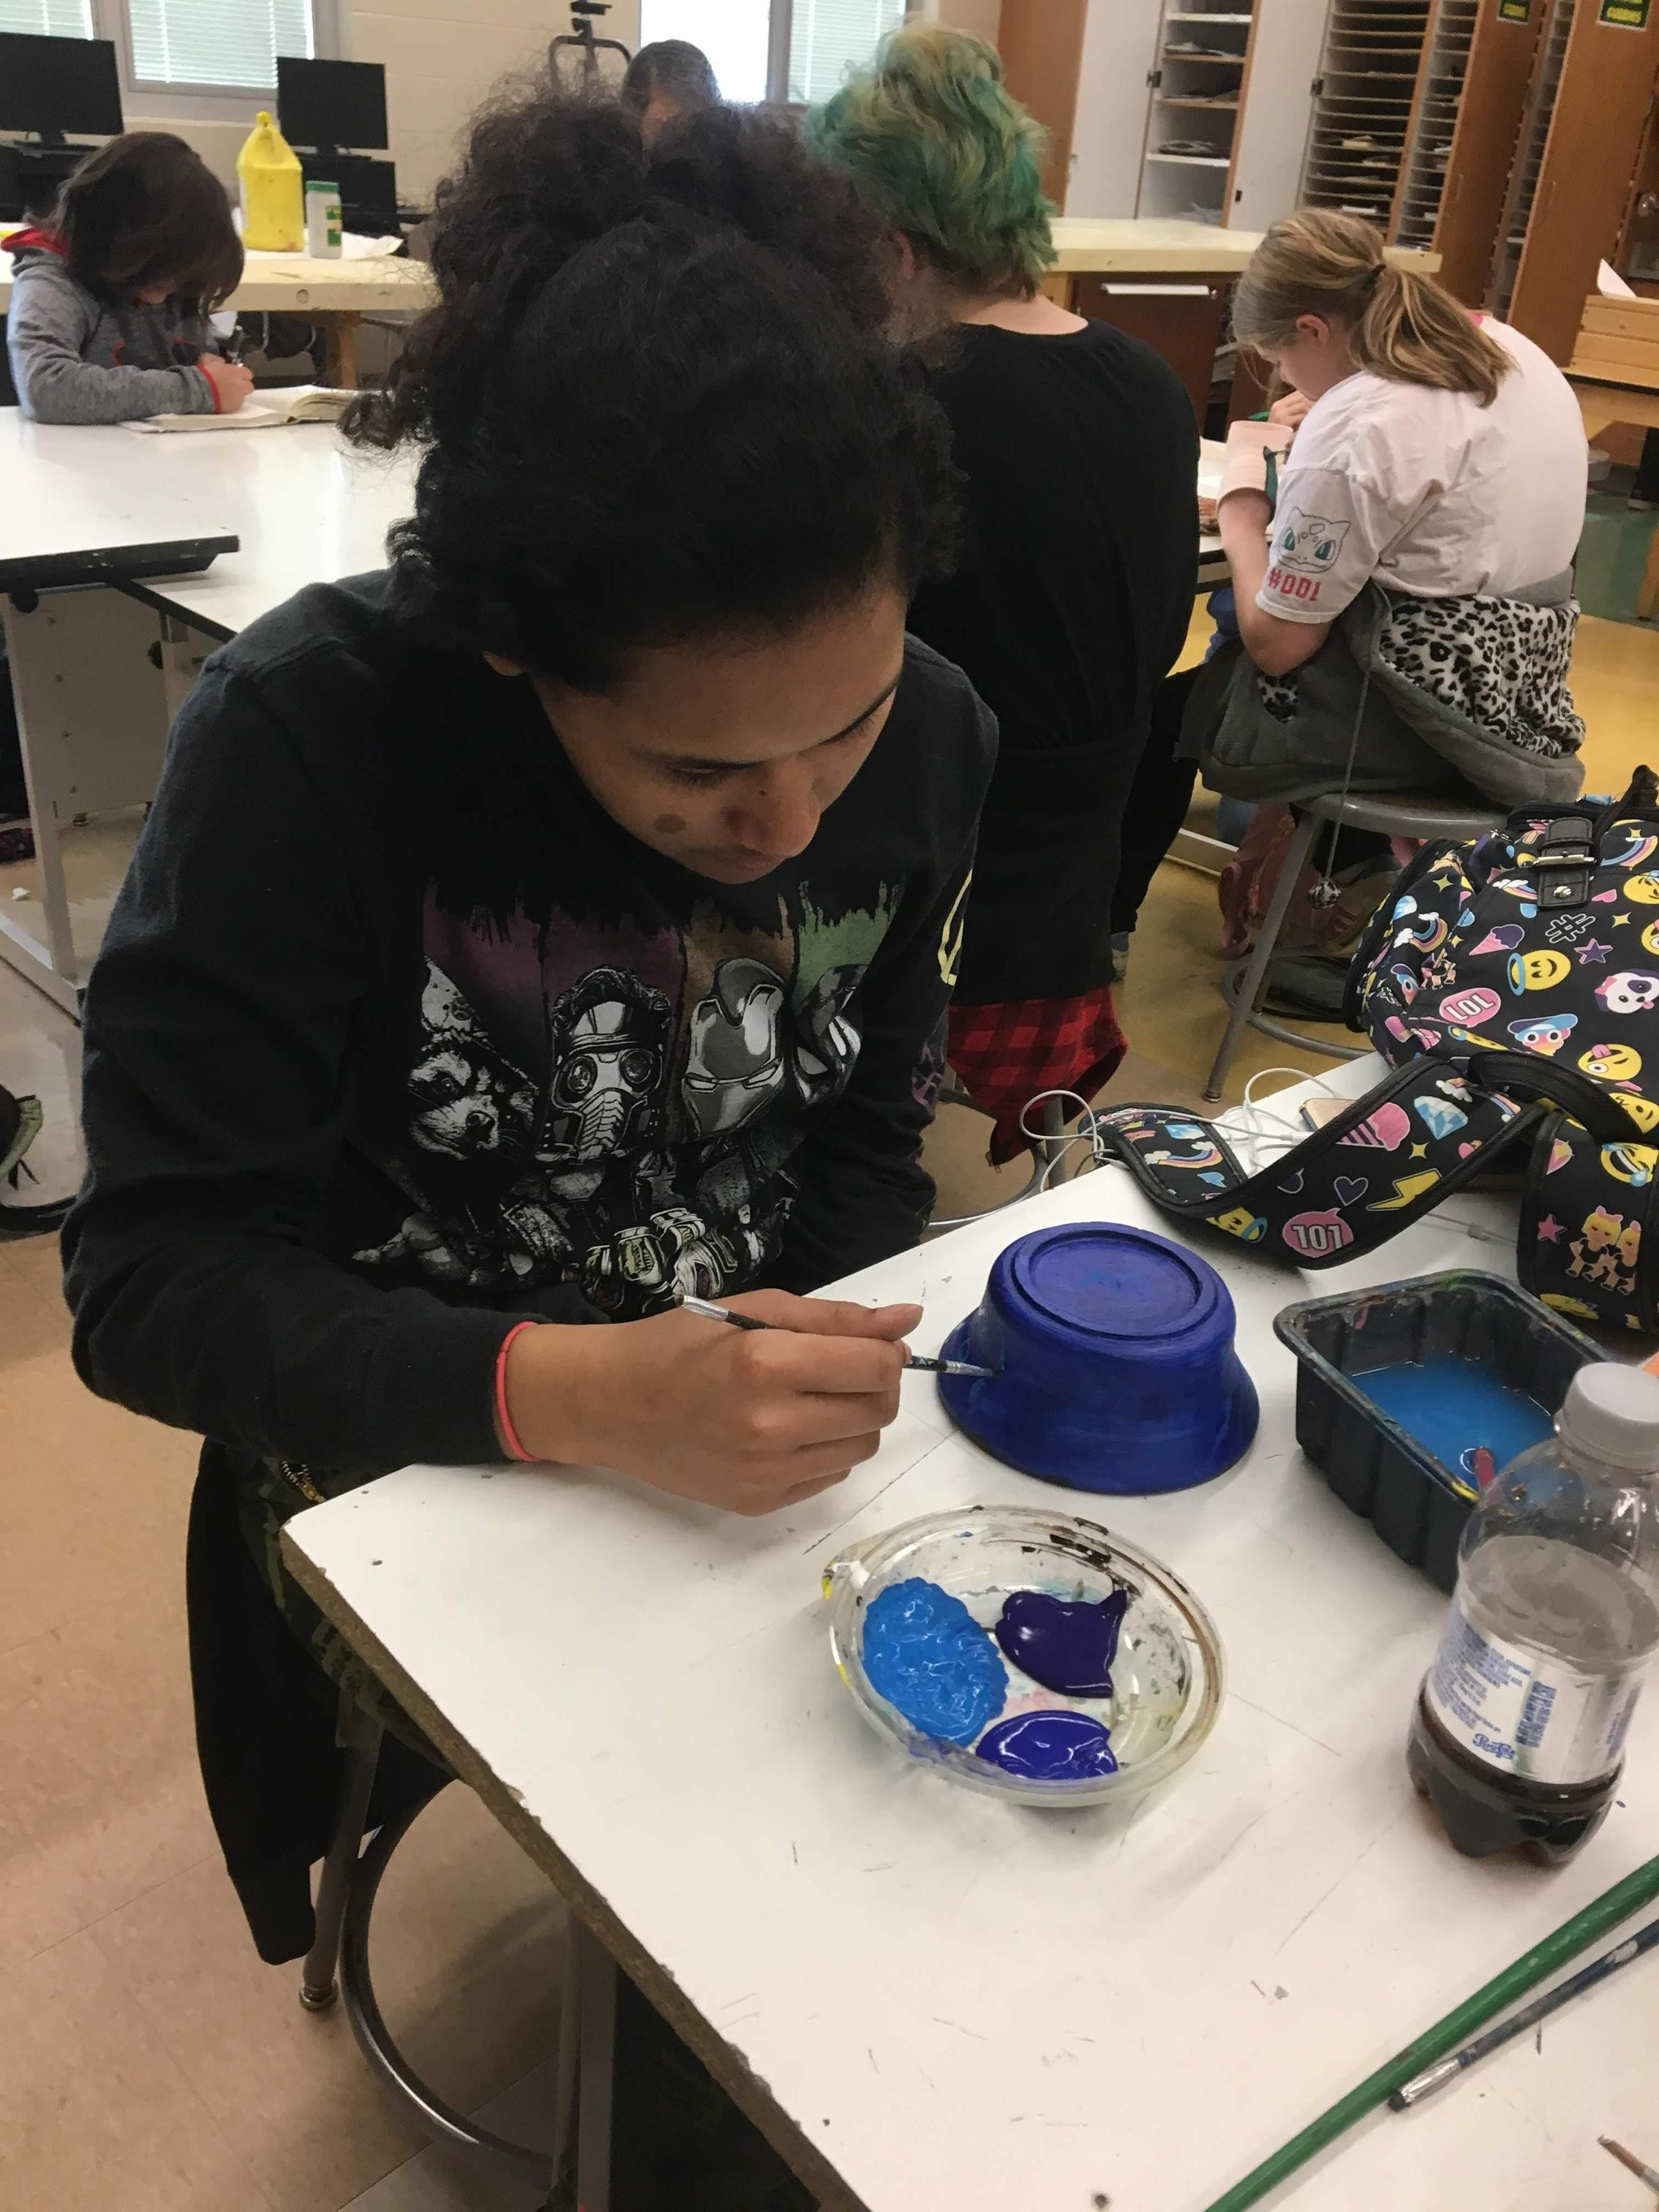 Student at work during Art Club on their project.